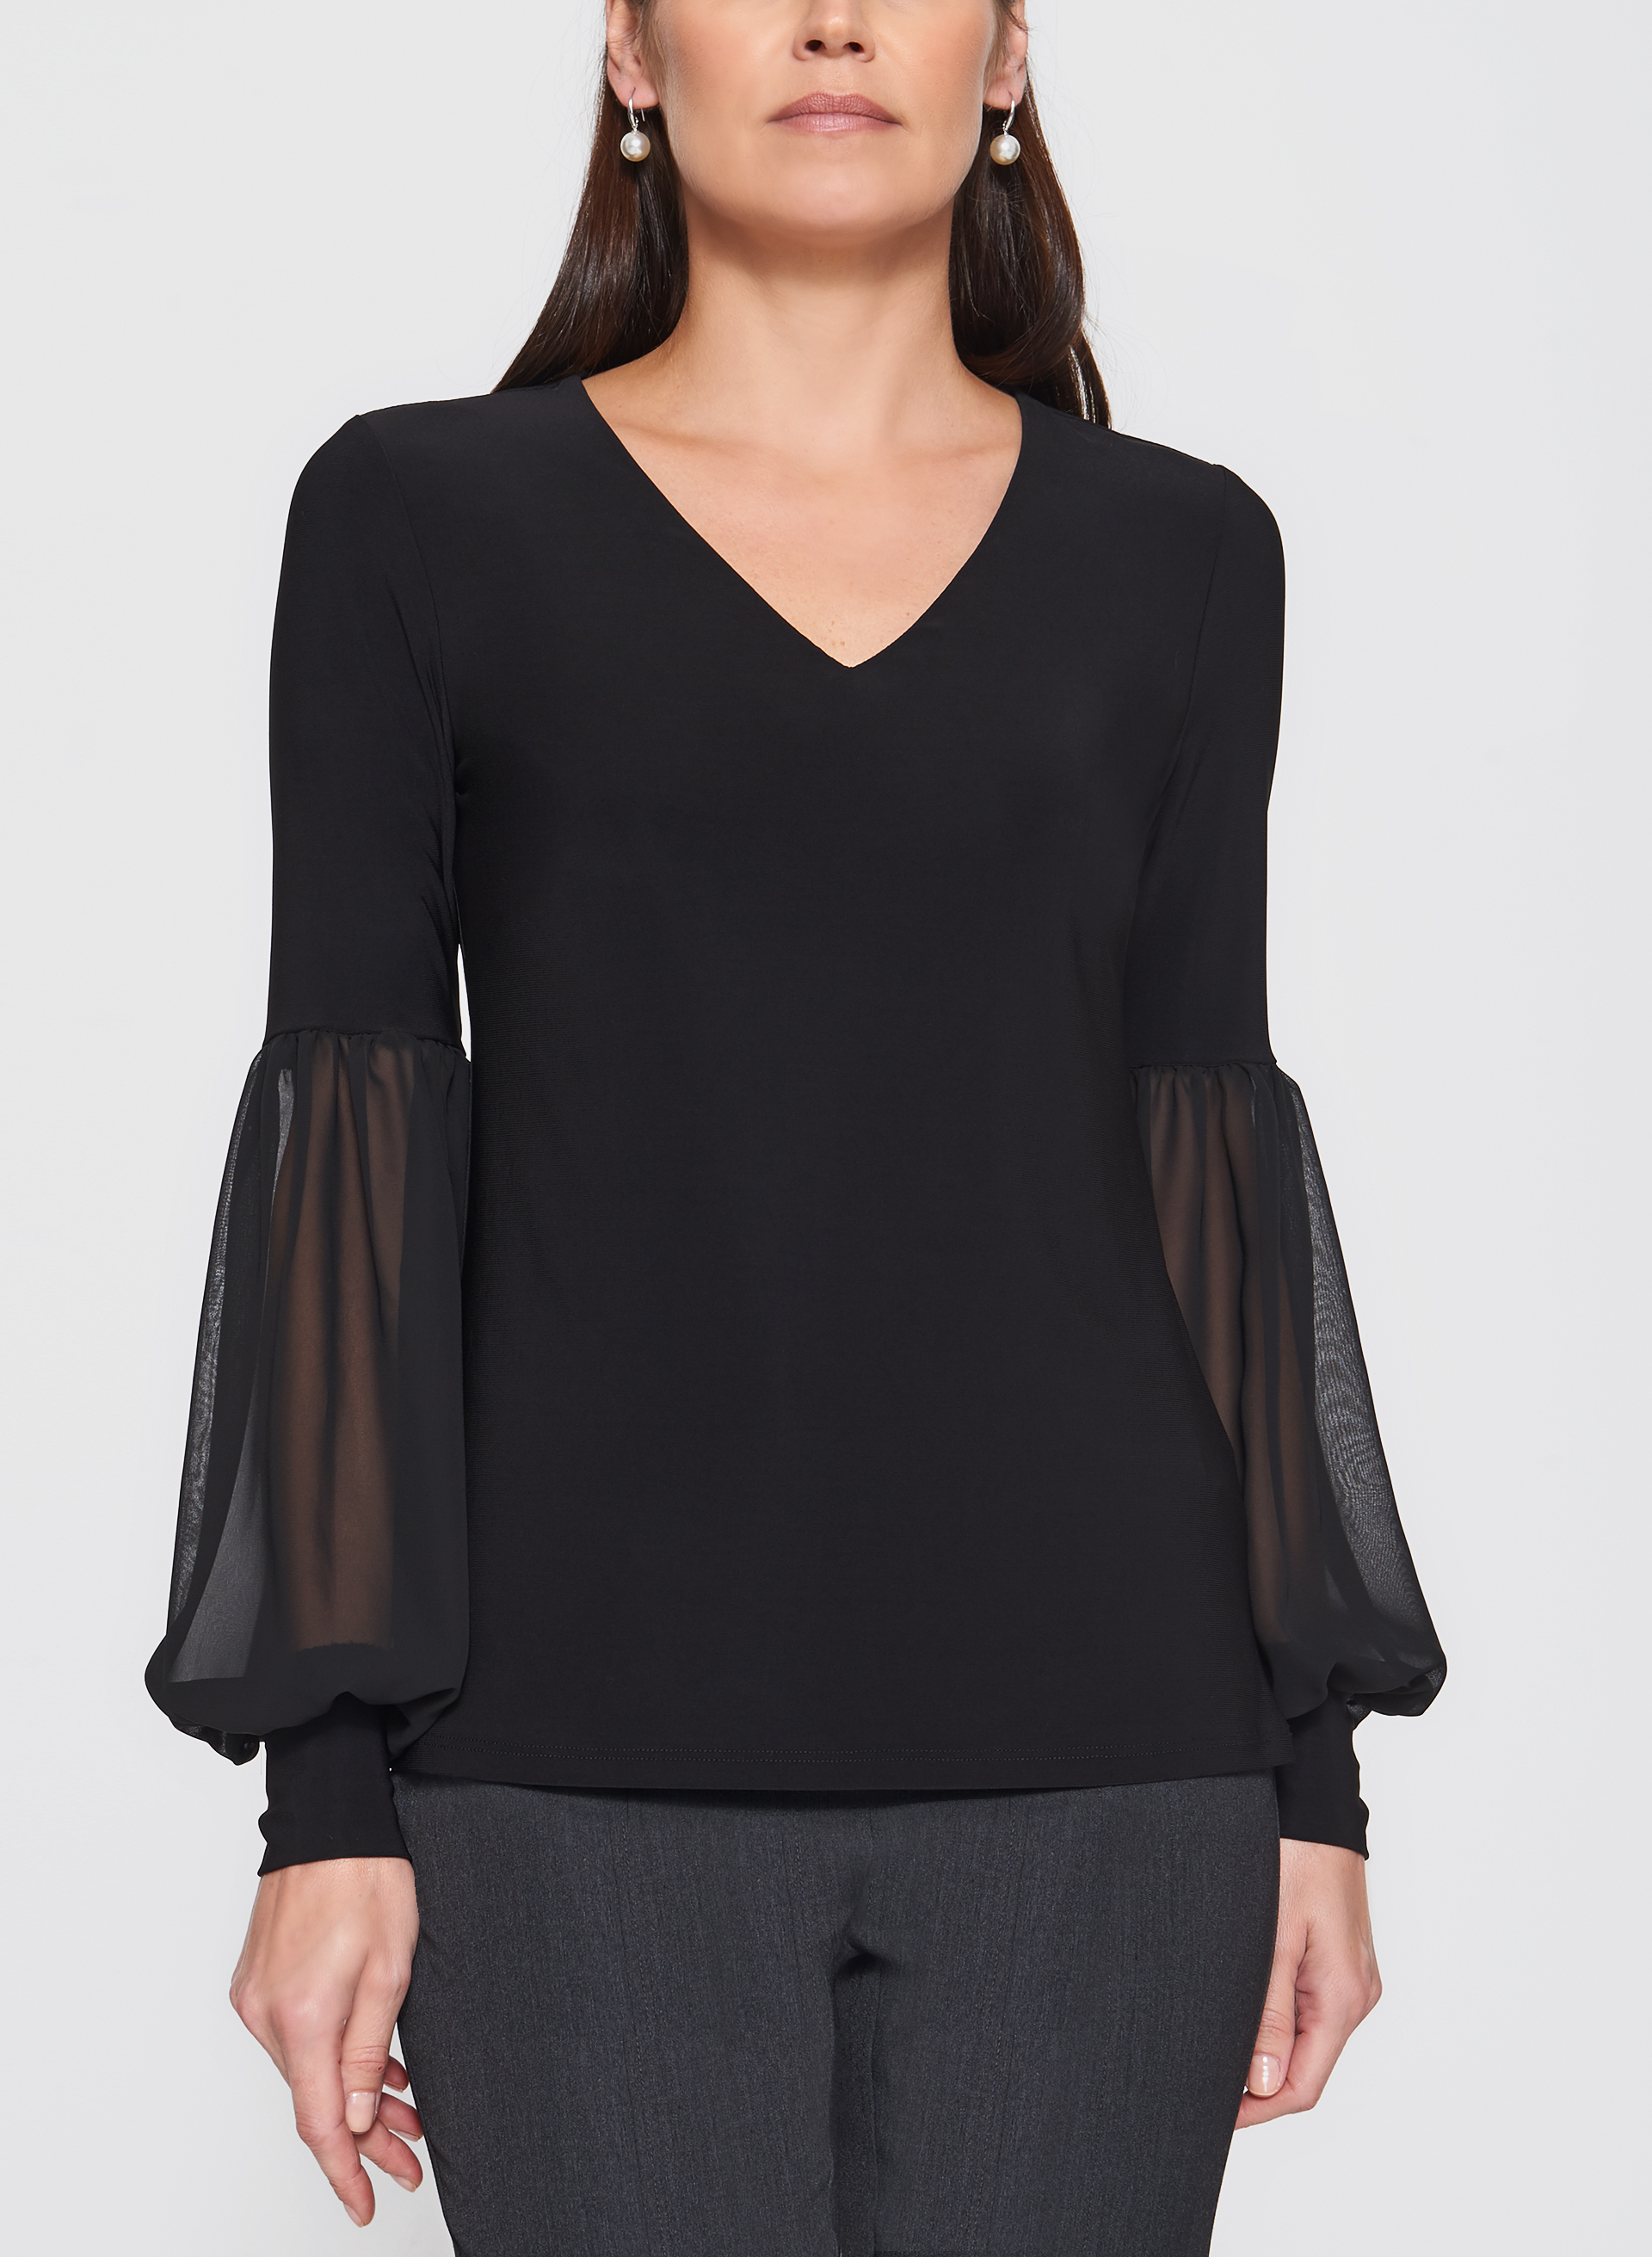 White Chiffon Blouses. Showing 40 of 54 results that match your query. Search Product Result. Product - Sexy V Neck Loose Long Sleeve Chiffon Shirt Pocket Top Plus Size Women Blouse. Product Image. Price $ Product Title. Sexy V Neck Loose Long Sleeve Chiffon Shirt Pocket Top Plus Size Women Blouse.